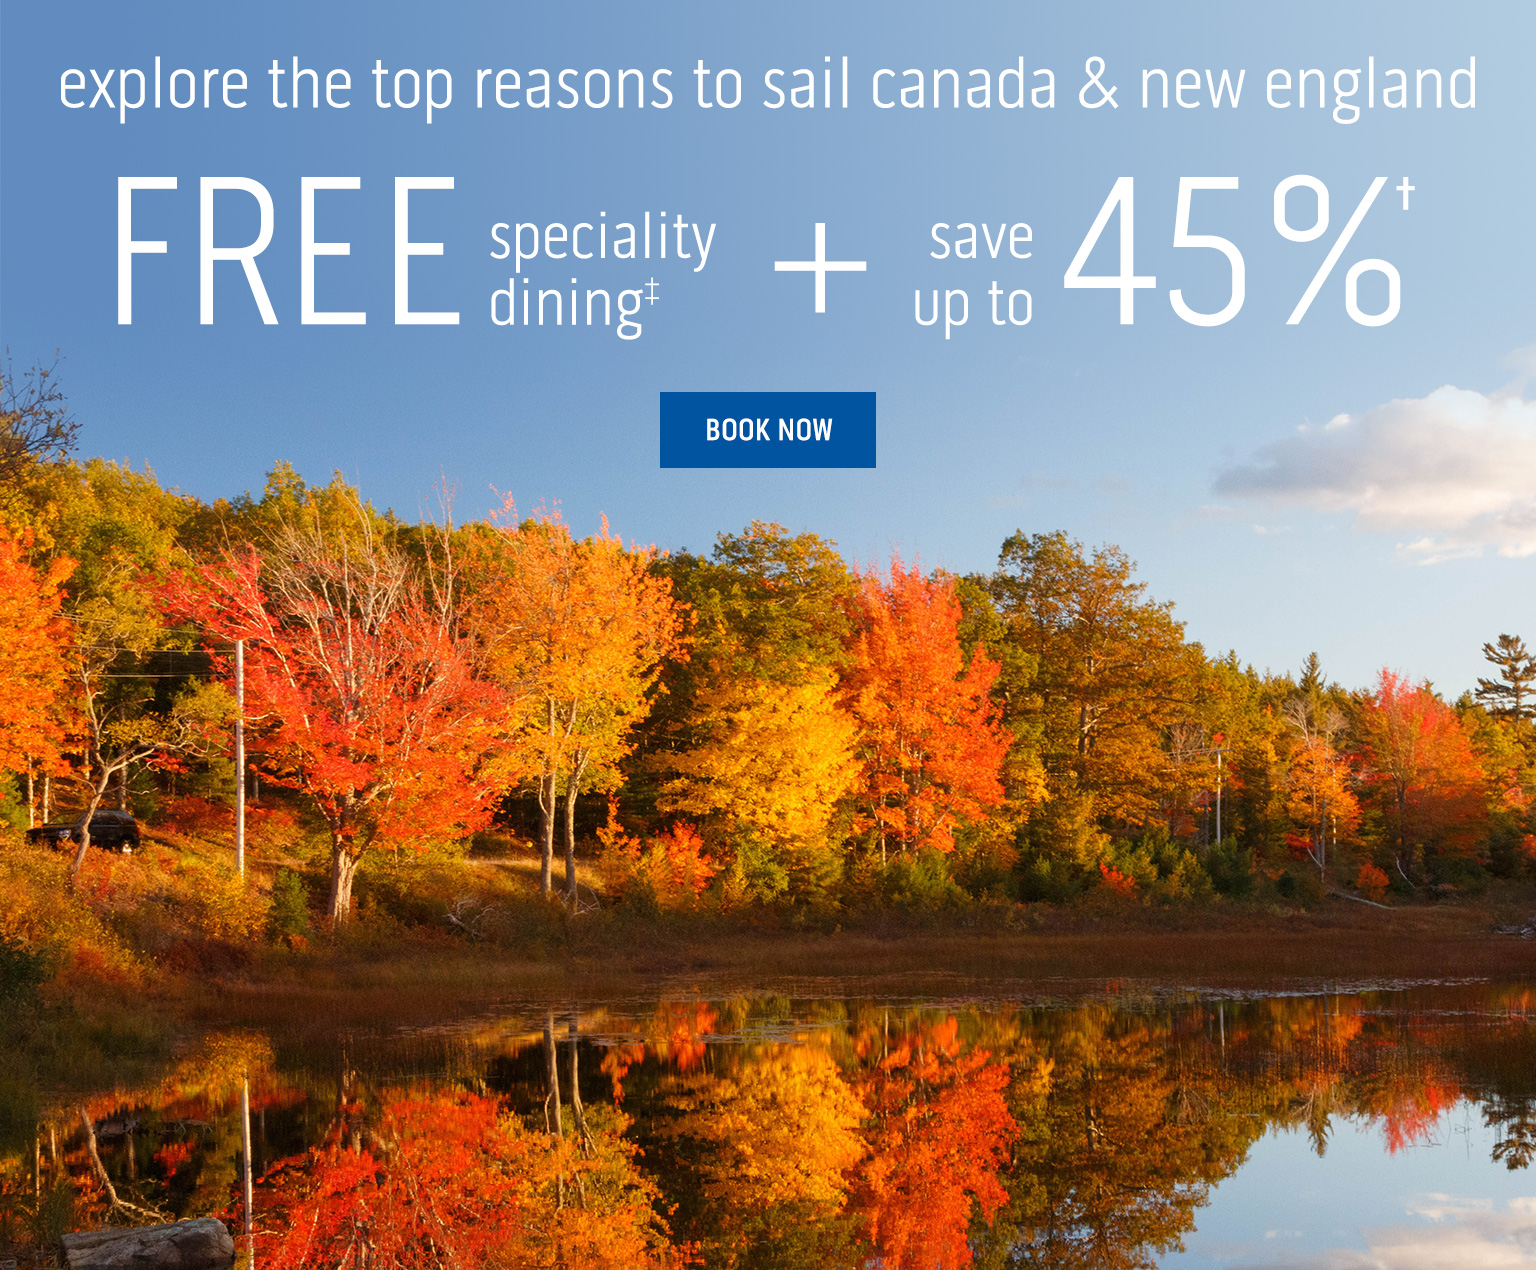 Up to 45% off cruises to Canada & New England with Princess Cruises